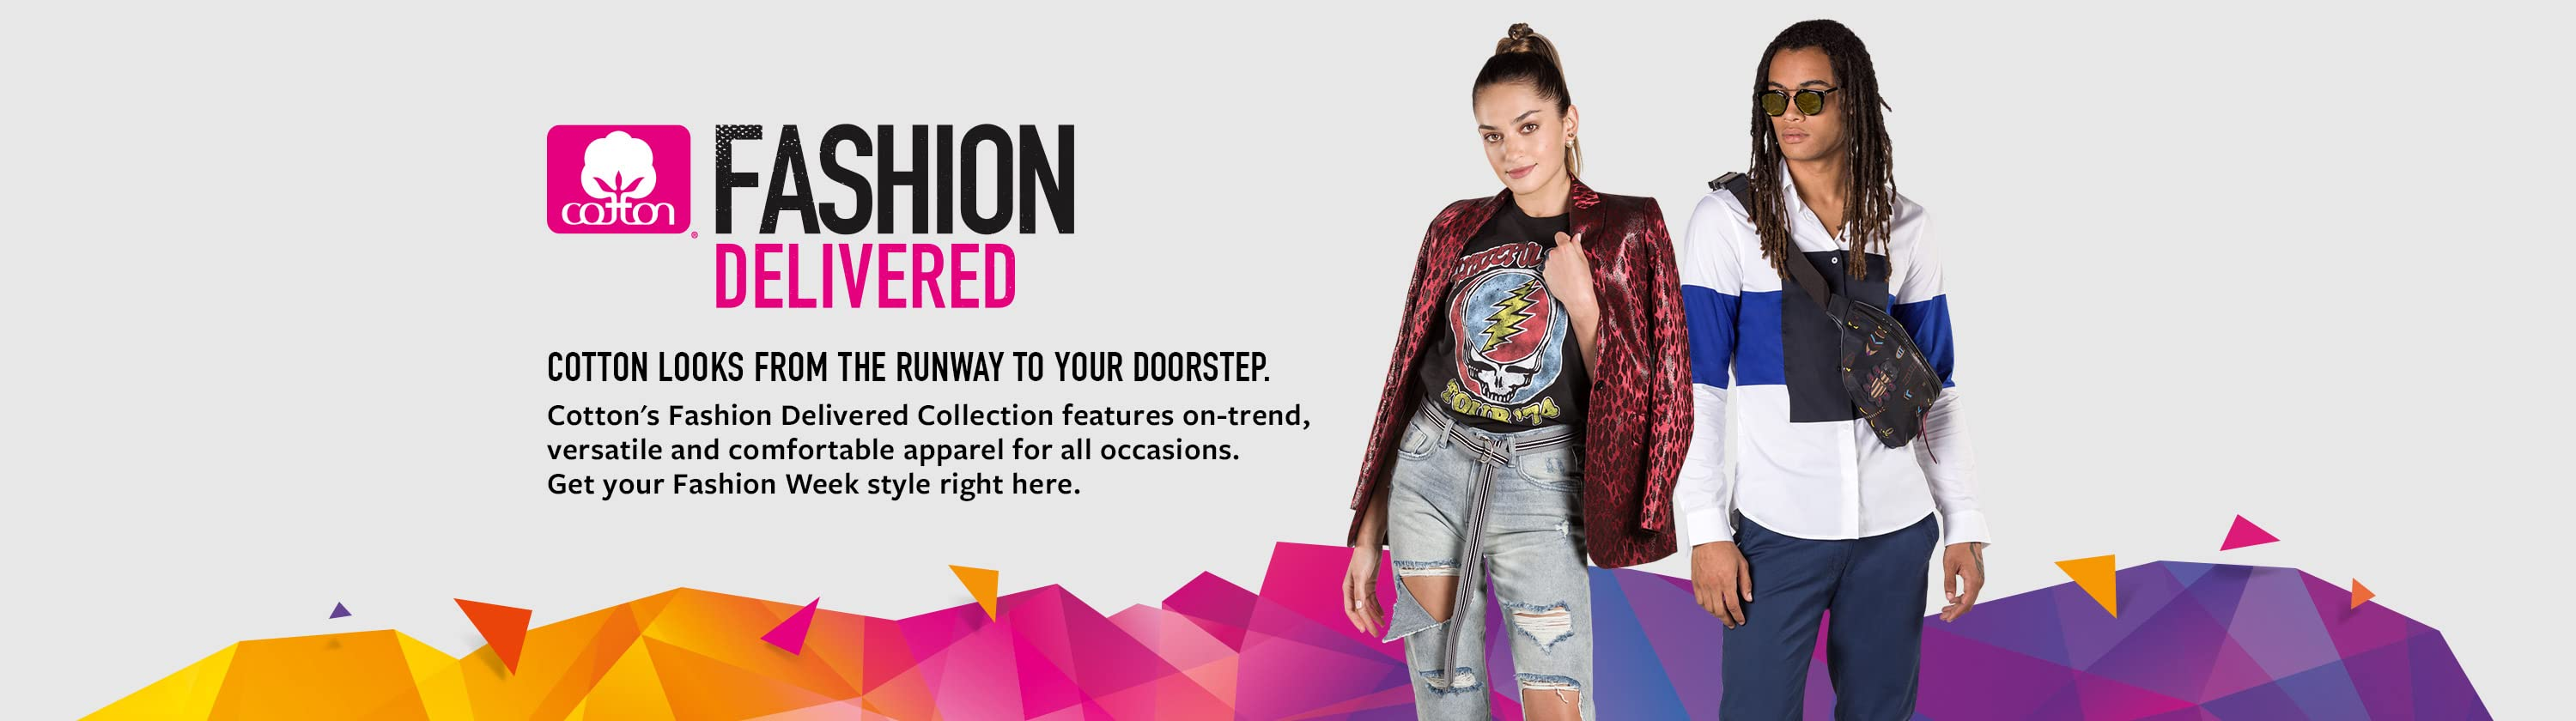 Cotton's Fashion Delivered collection features on-trend, versatile and comfortable apparel for all occasions. Get Fashion Week styles right here.